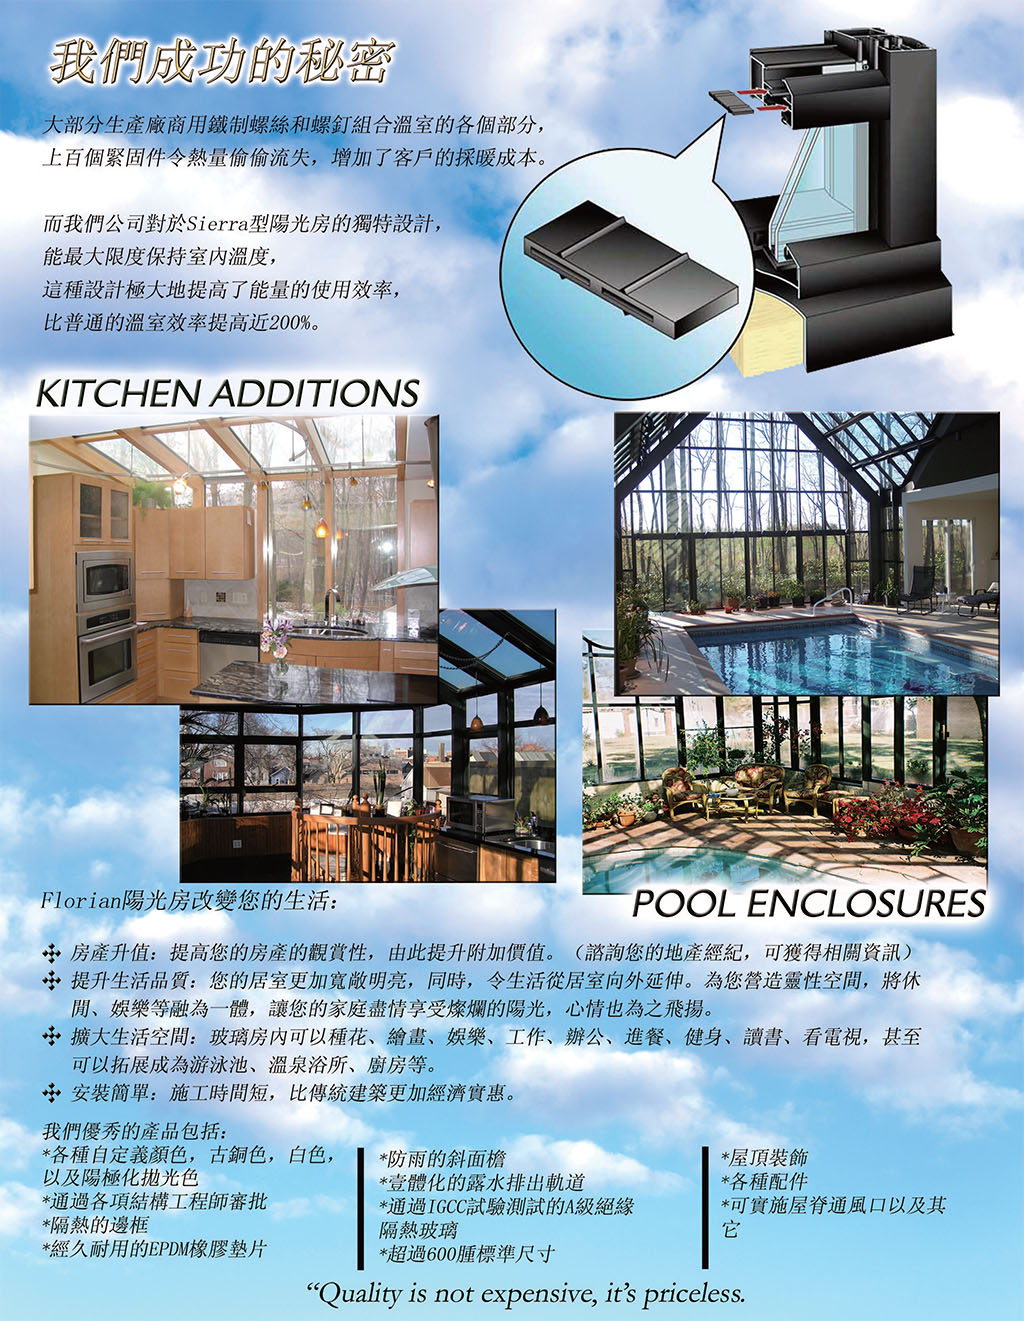 florian-sunrooms-toronto-chinese-flyer-2